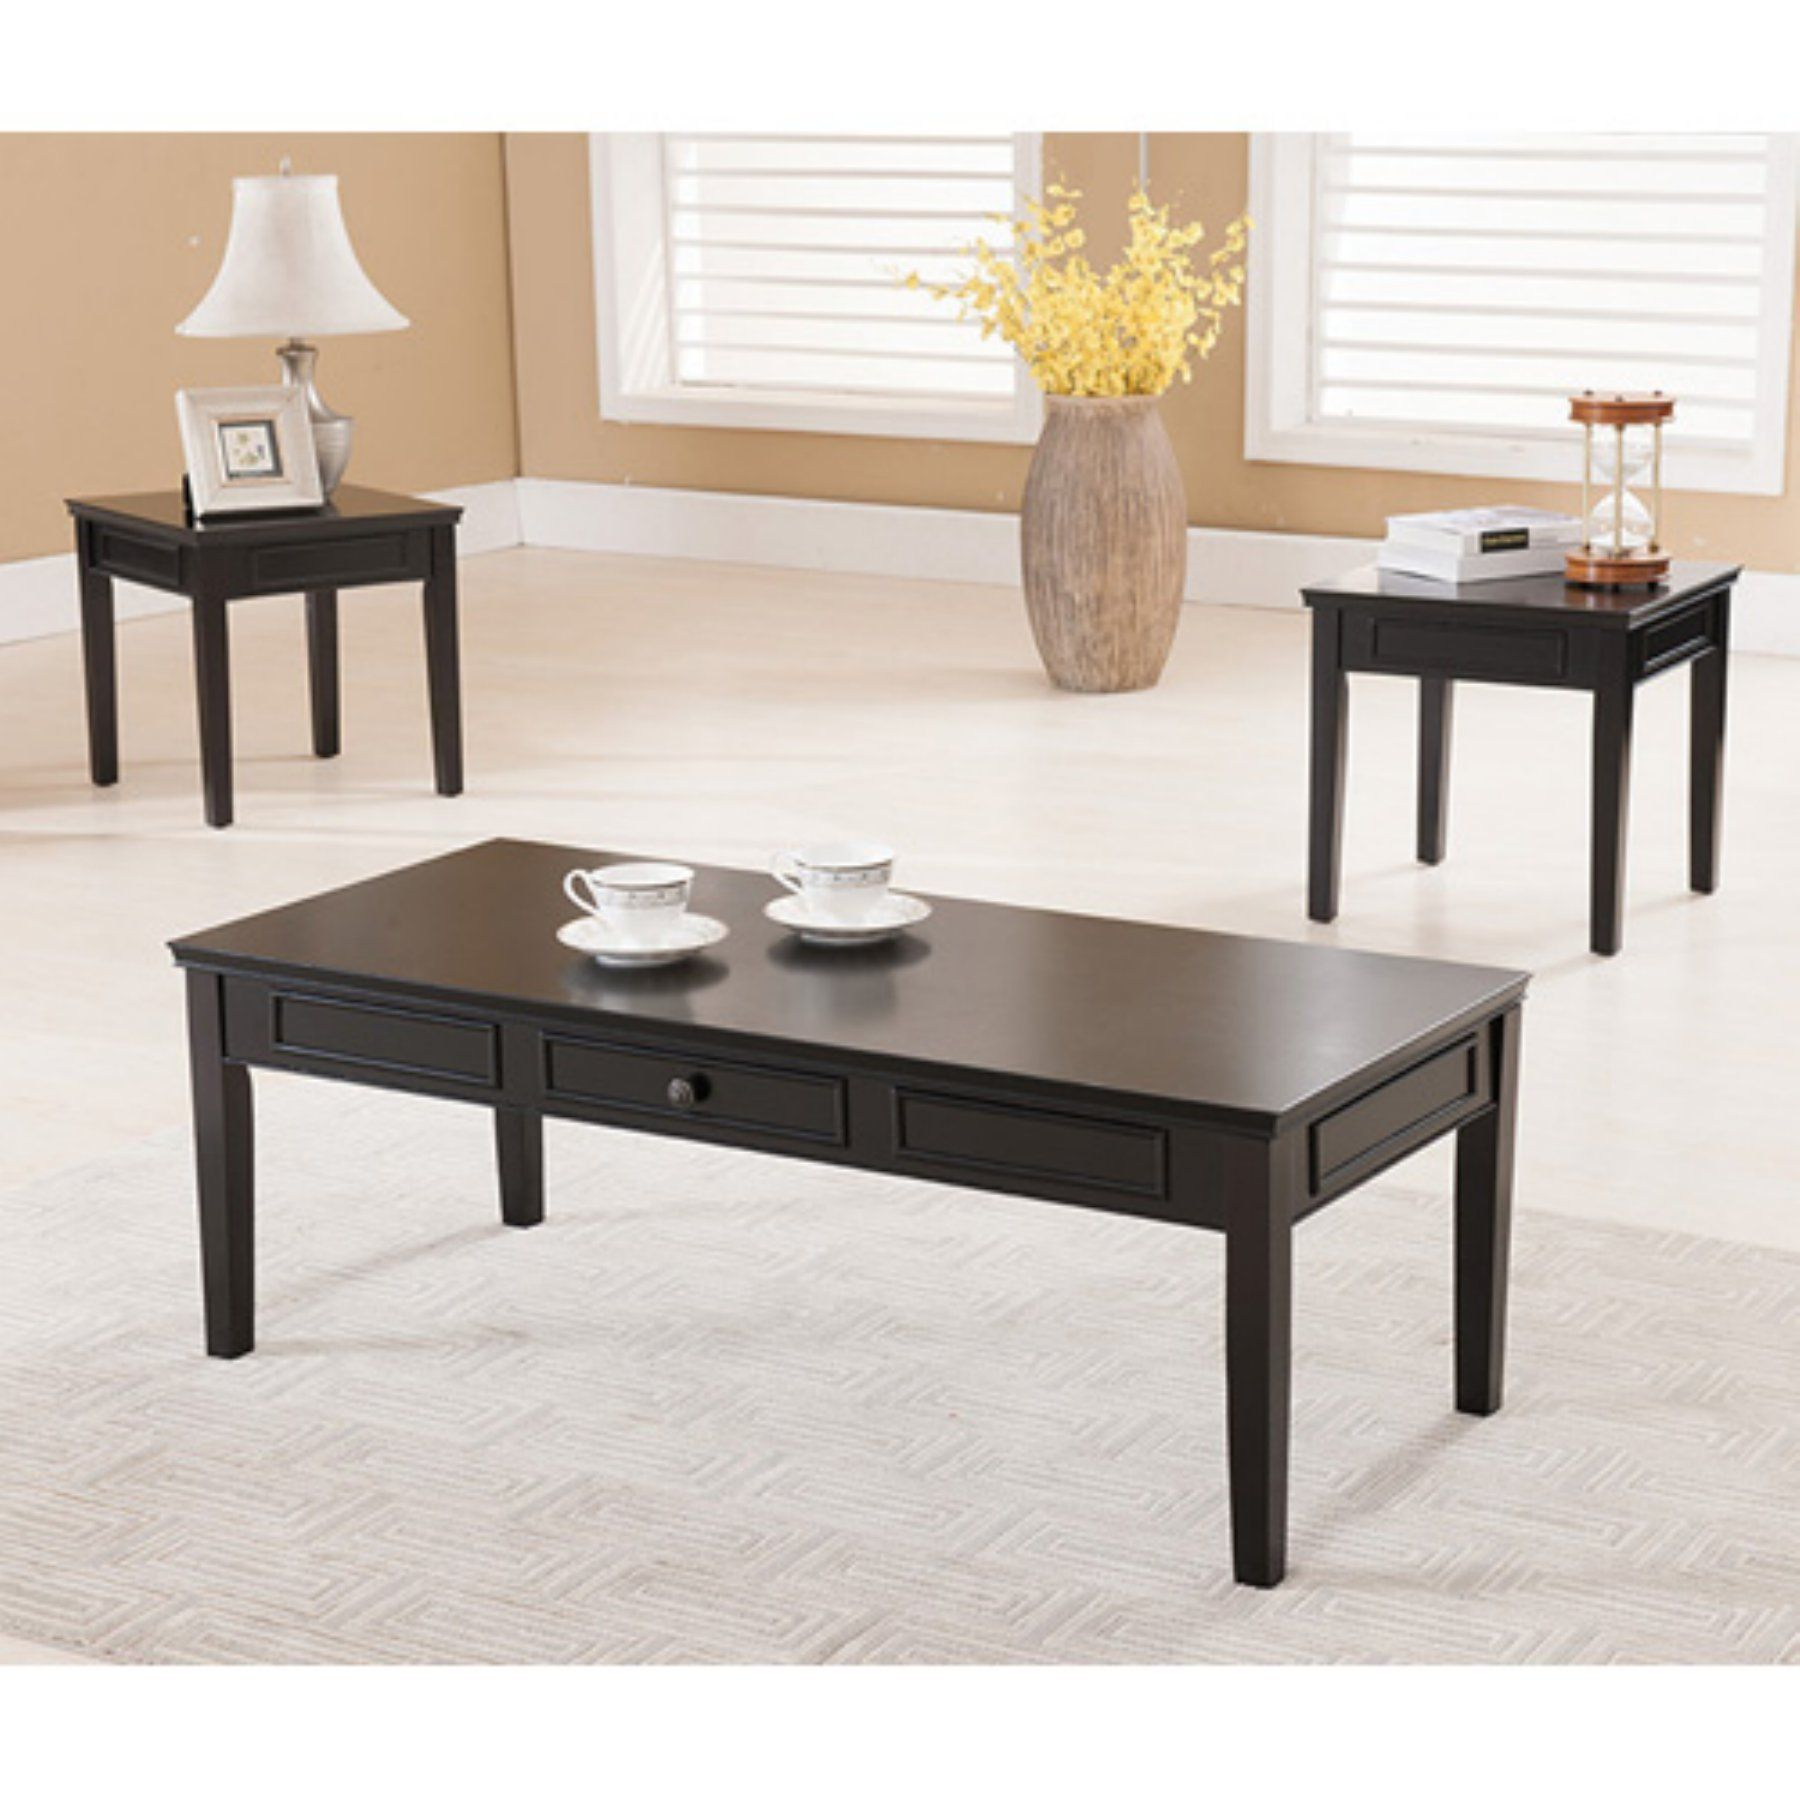 K B Furniture T Piece Cocktail And End Table Set T - Cocktail end table sets